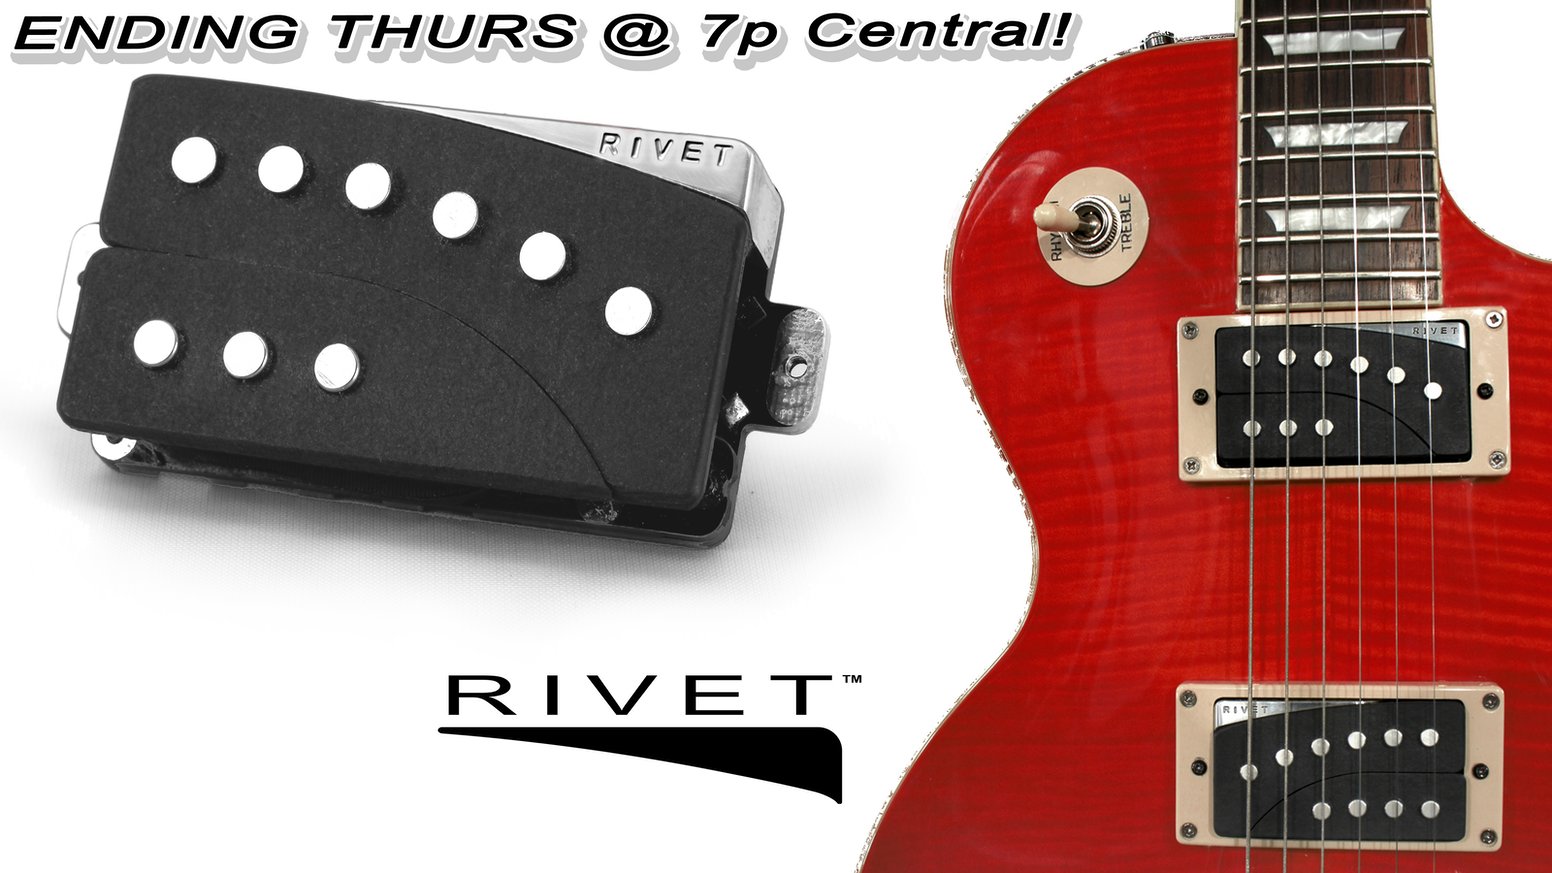 Rivet Electric Guitar Pickups Join The Evolution By Gtr Novo